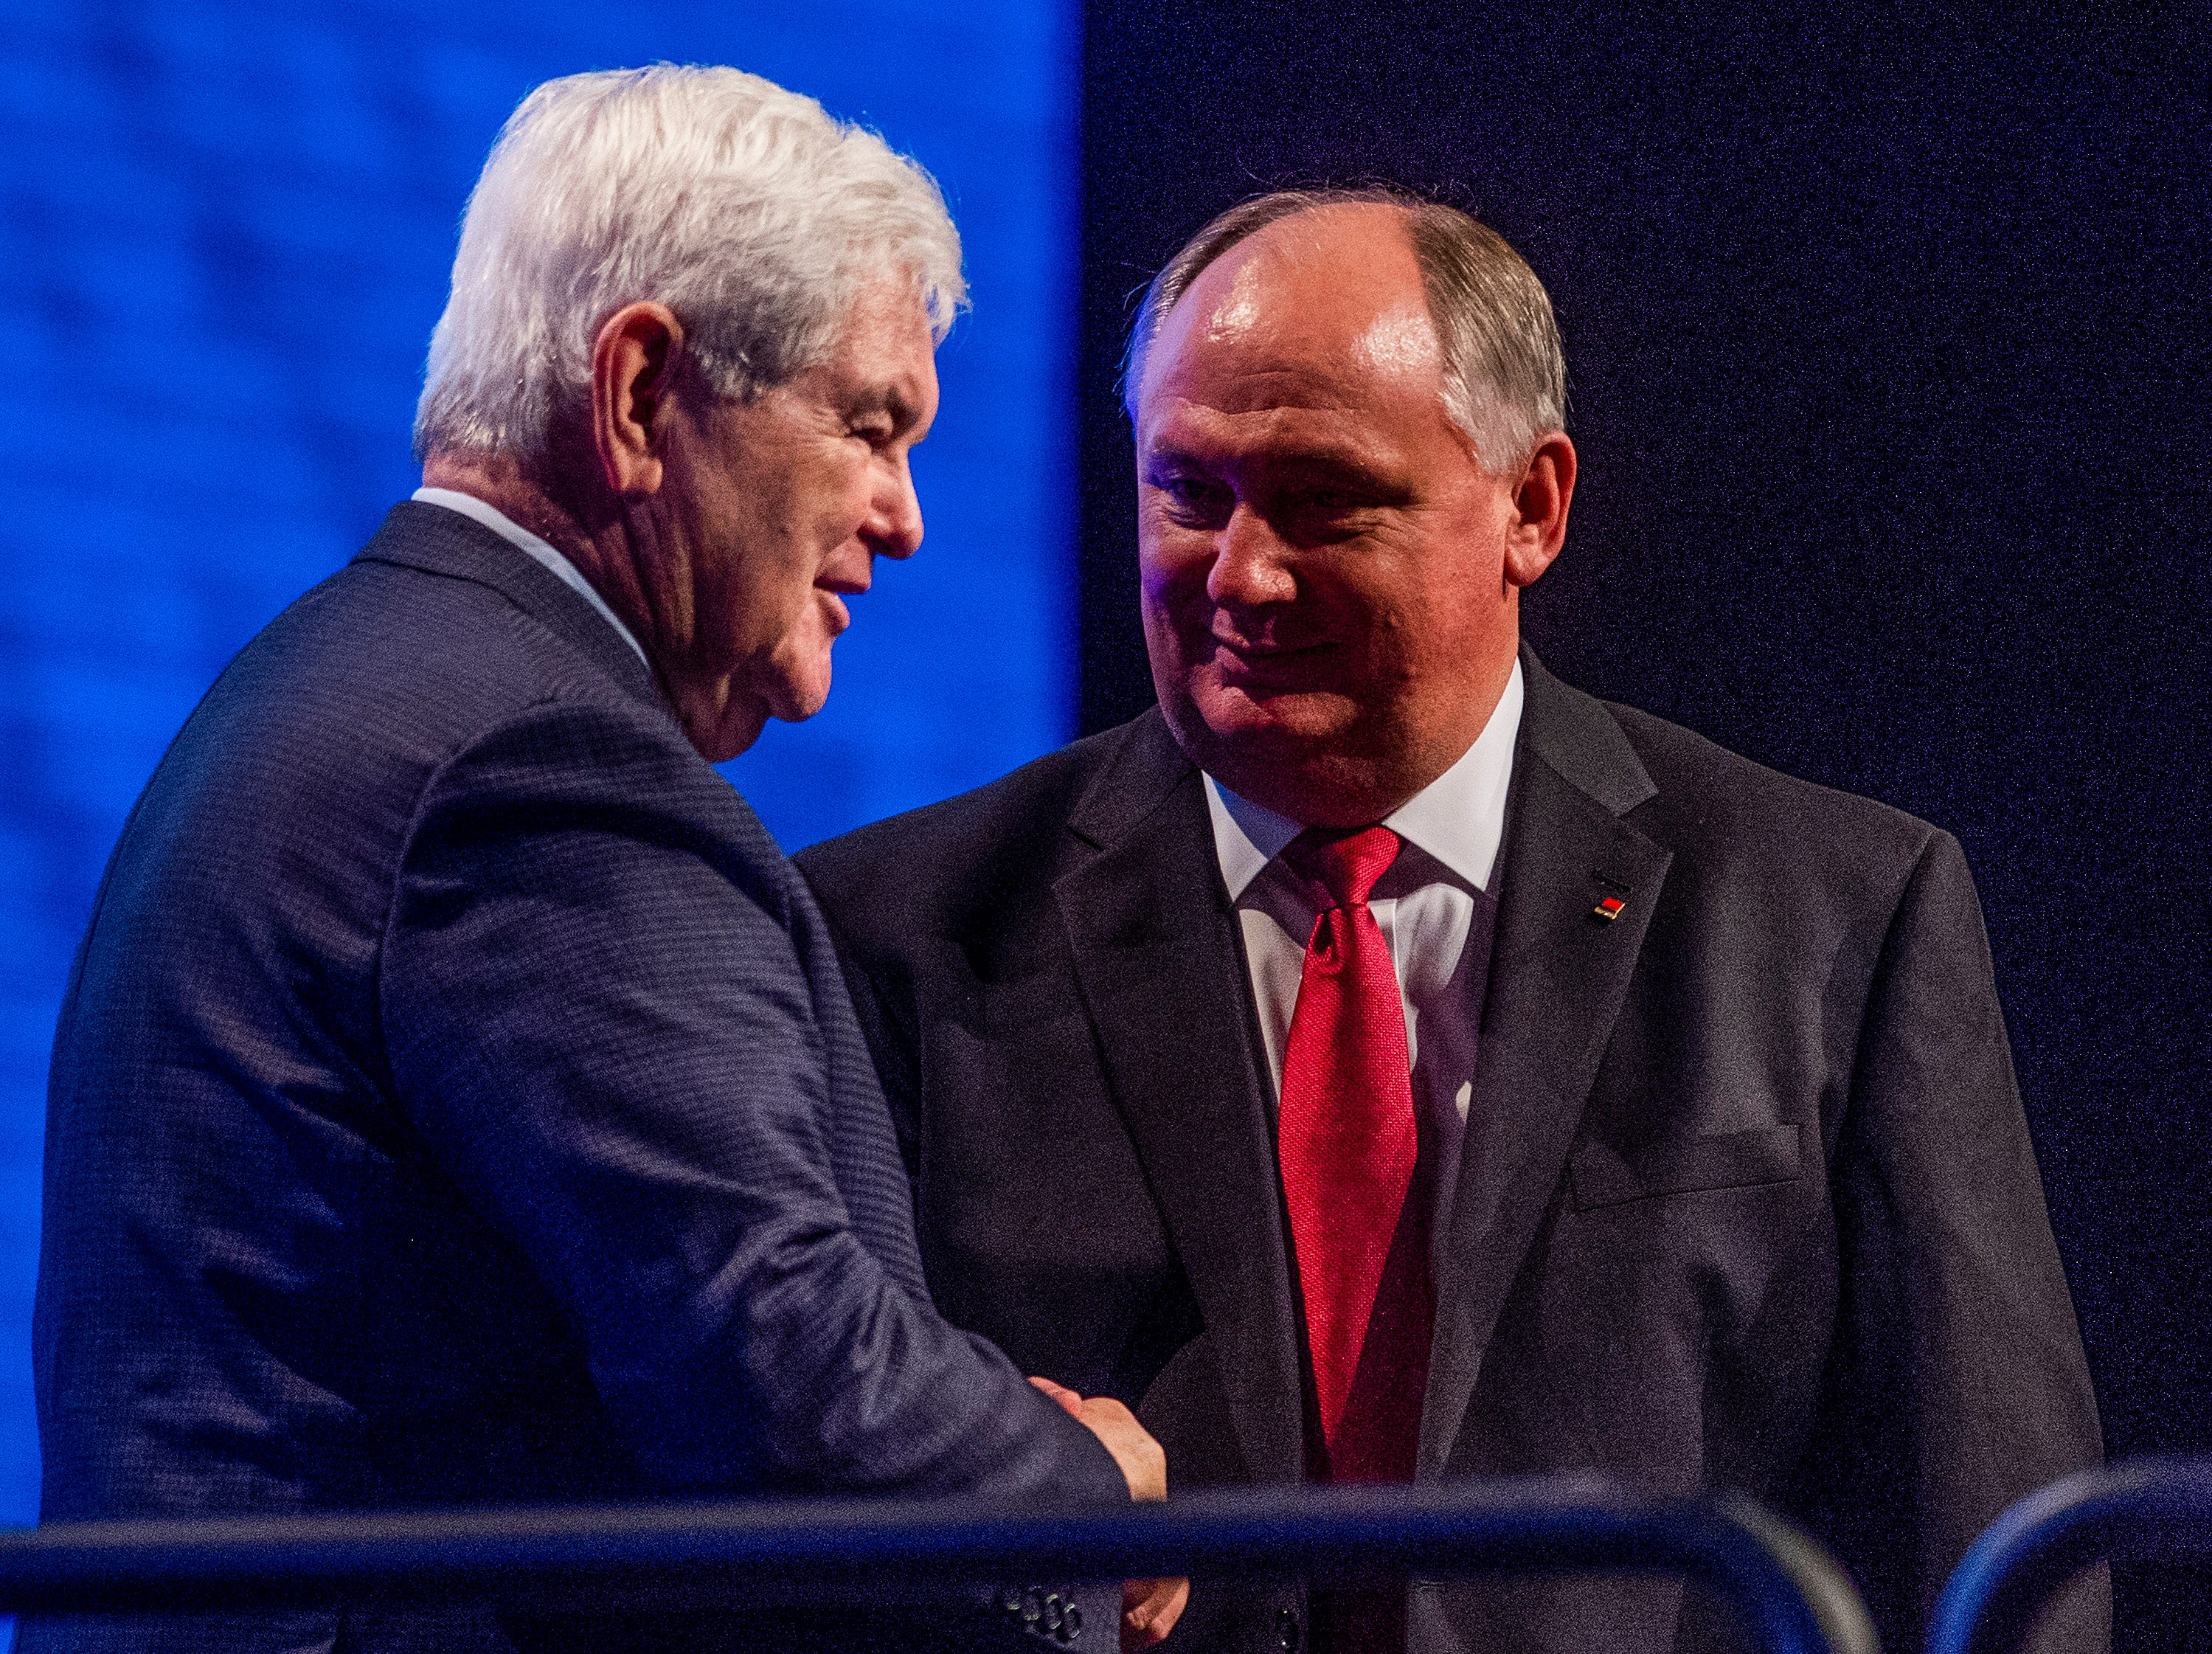 Former Speaker of the House Newt Gingrich is greeted by Alabama Farmers Federation President during the Alfa Farmers Annual Meeting at the Convention Center in Montgomery, Ala., on Monday evening December 3, 2018.